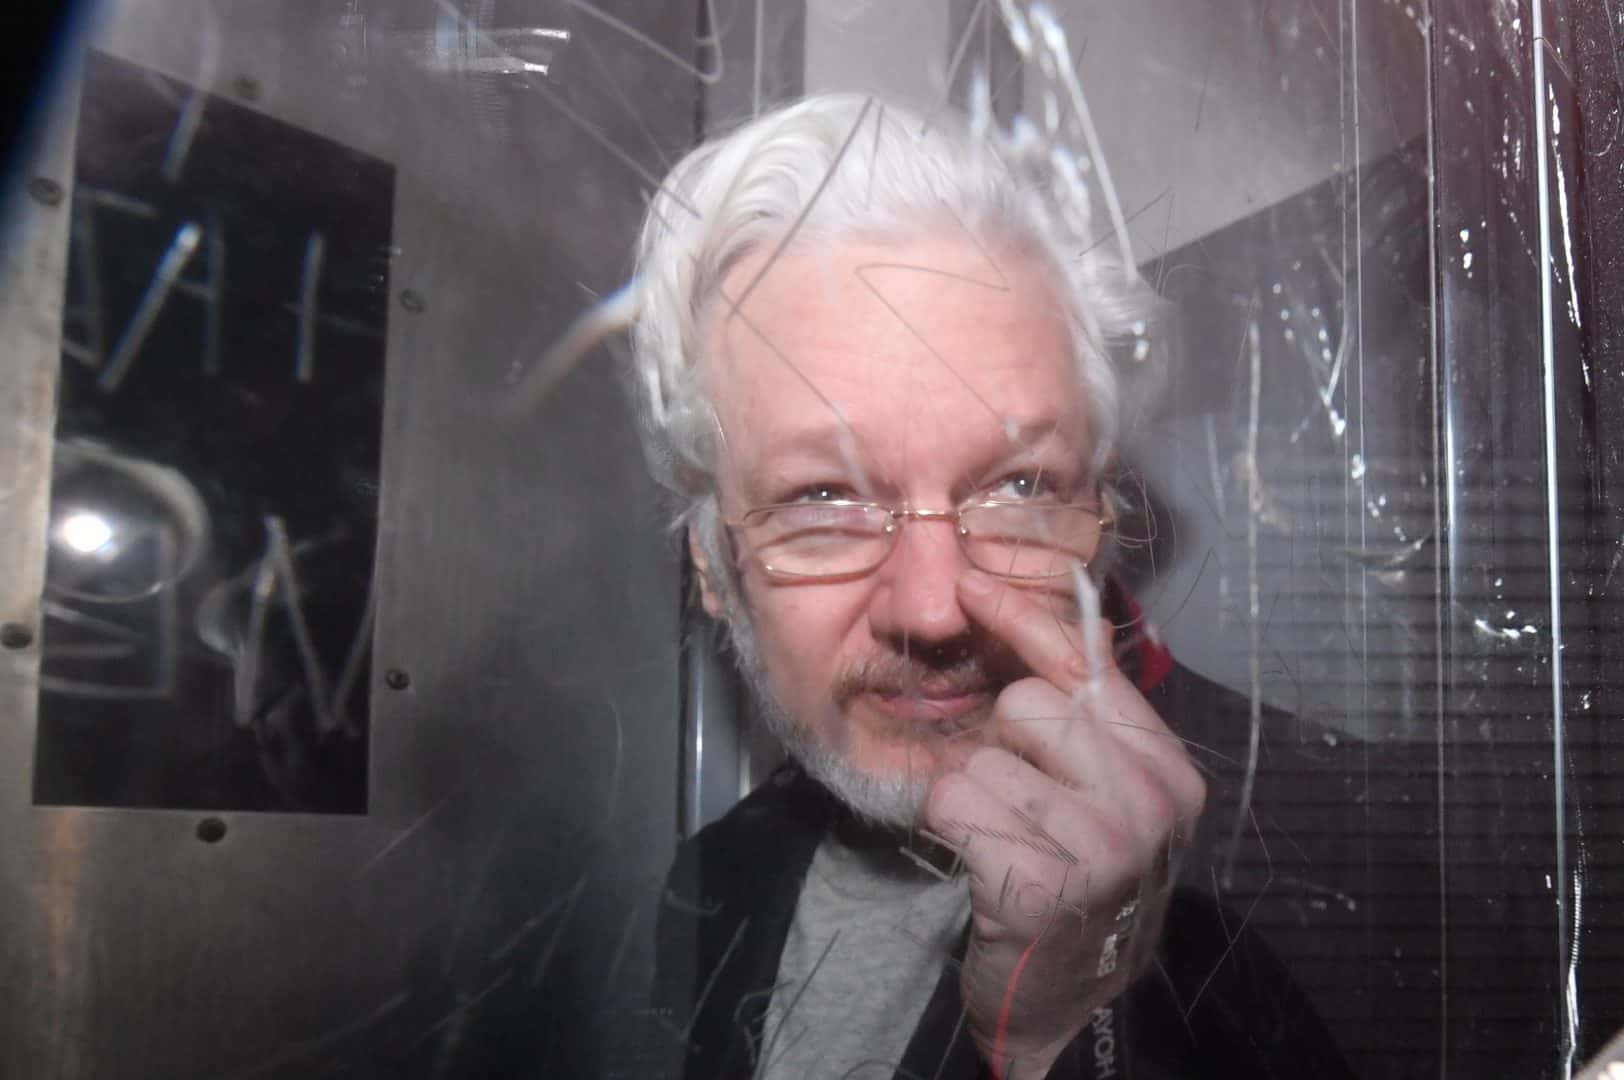 Julian Assange's health improving in prison: WikiLeaks chief